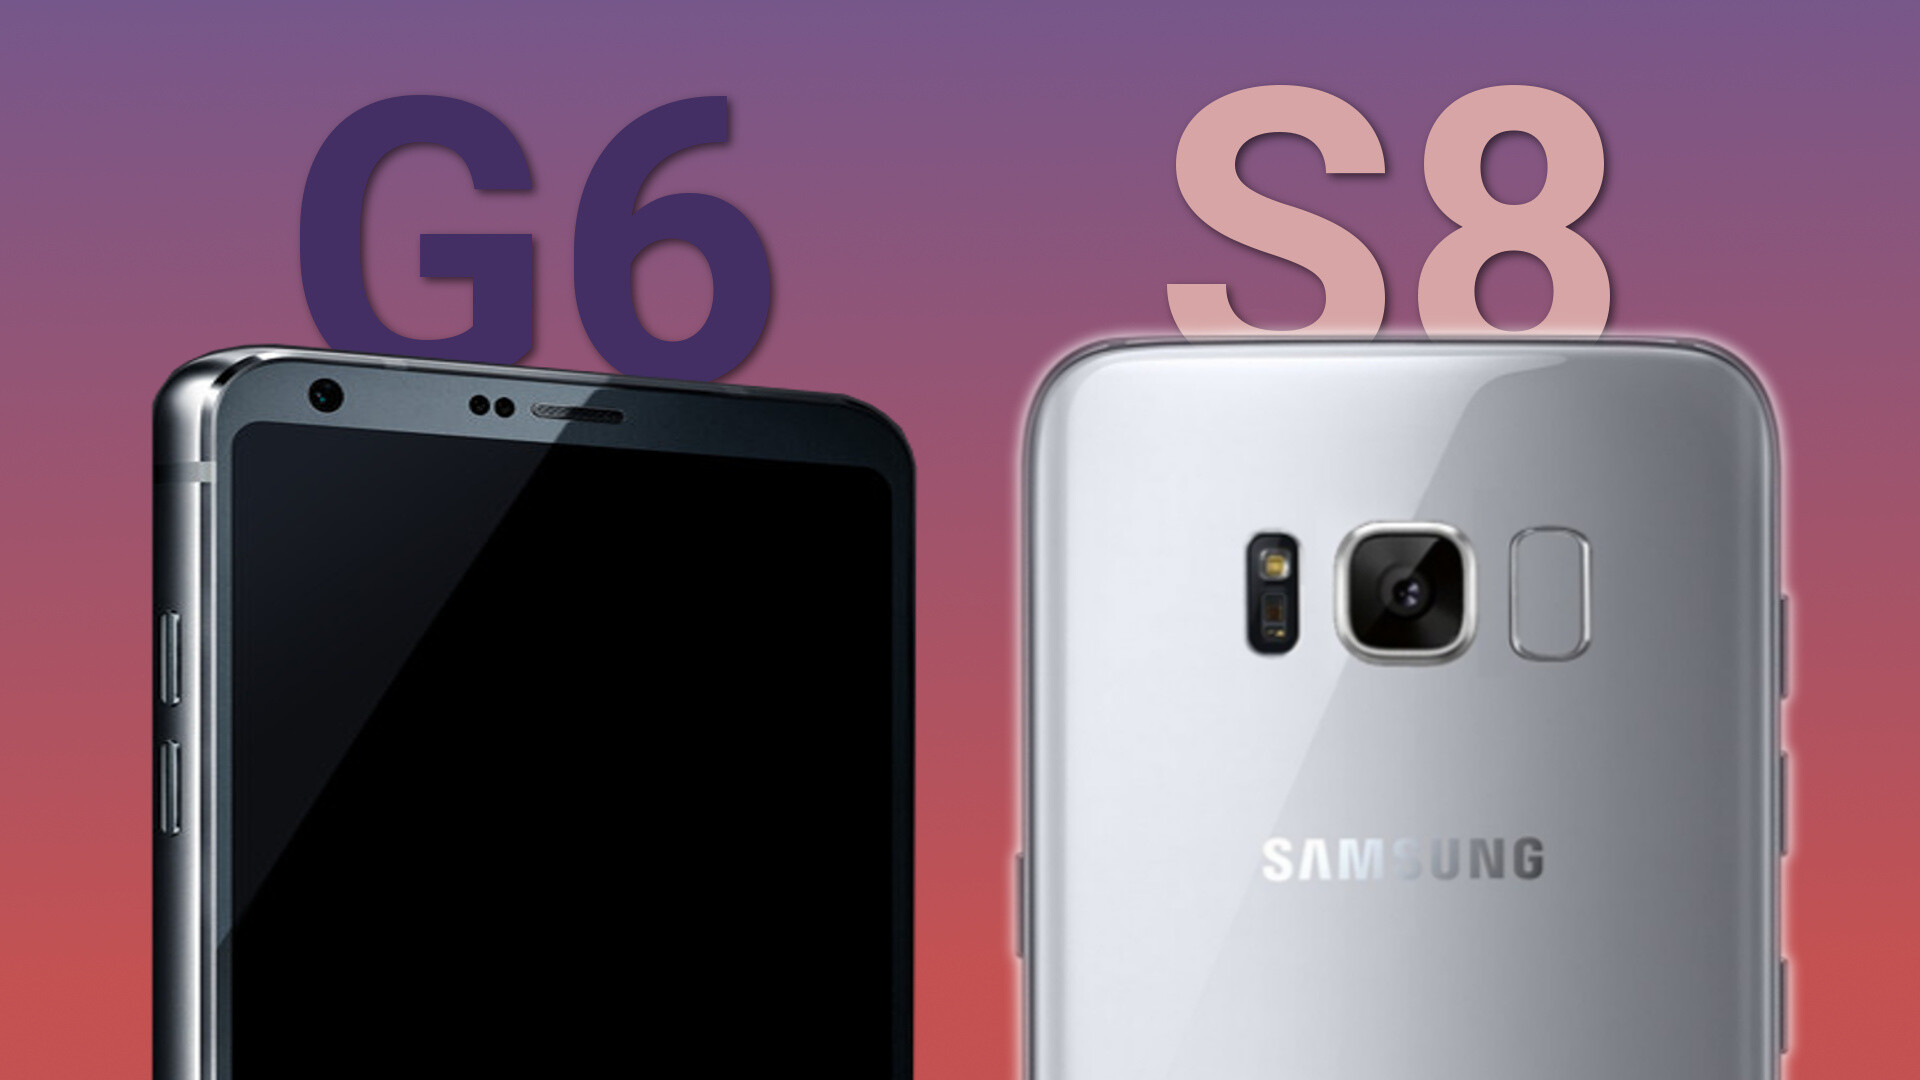 samsung galaxy s8 vs lg g6 preliminary specs comparison. Black Bedroom Furniture Sets. Home Design Ideas